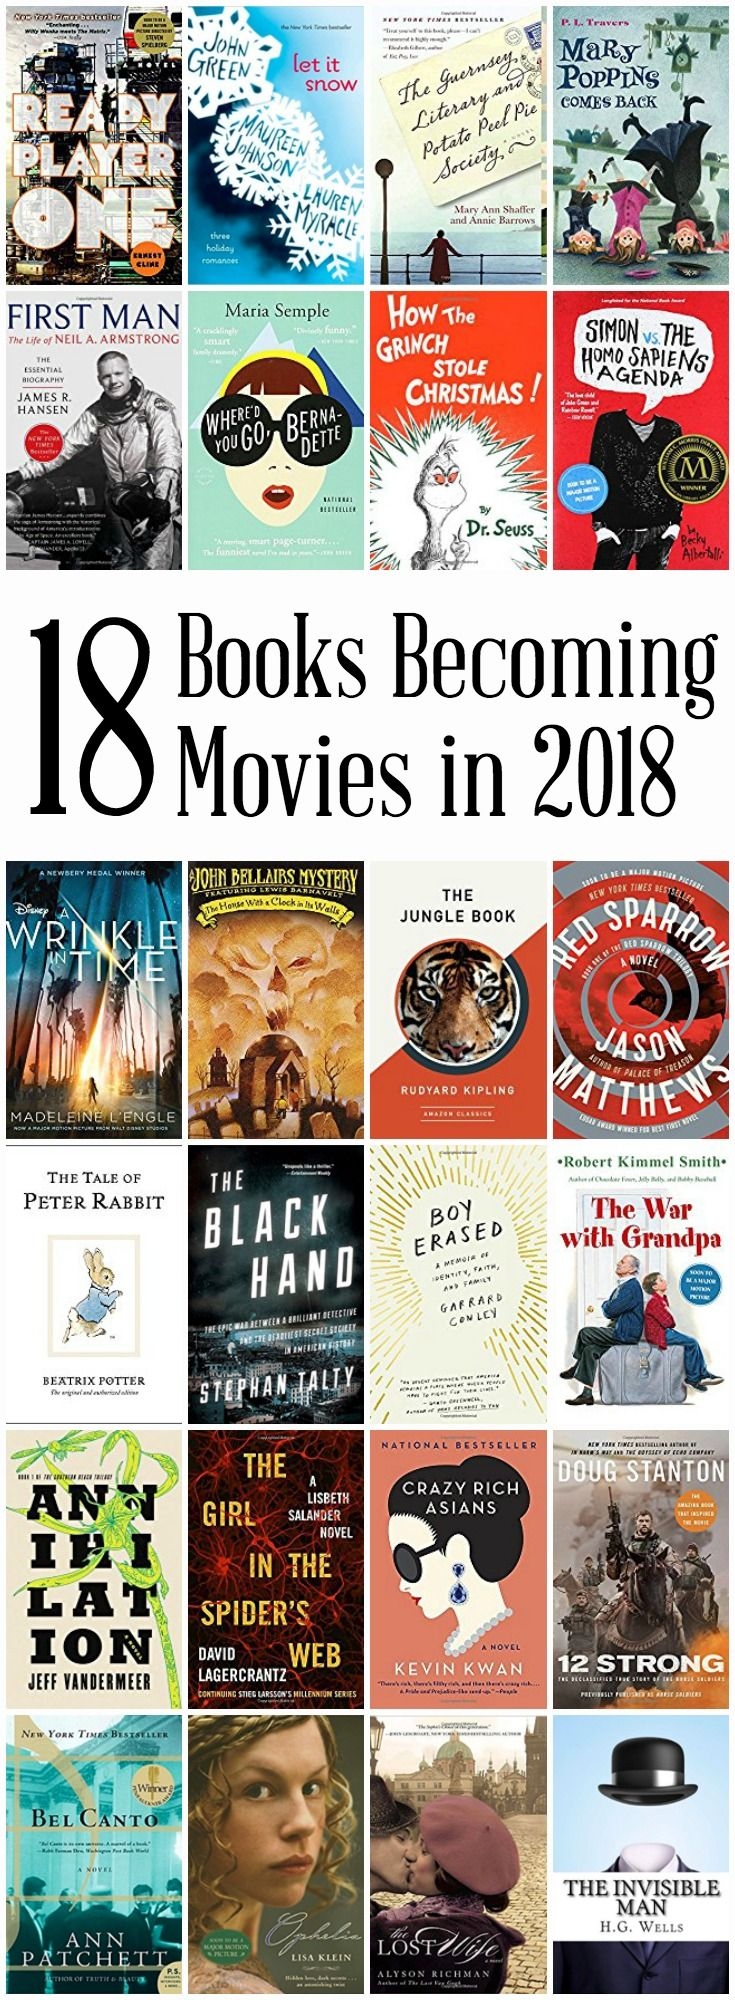 Have You Read These 18 Books Becoming Movies In 2018 Save More